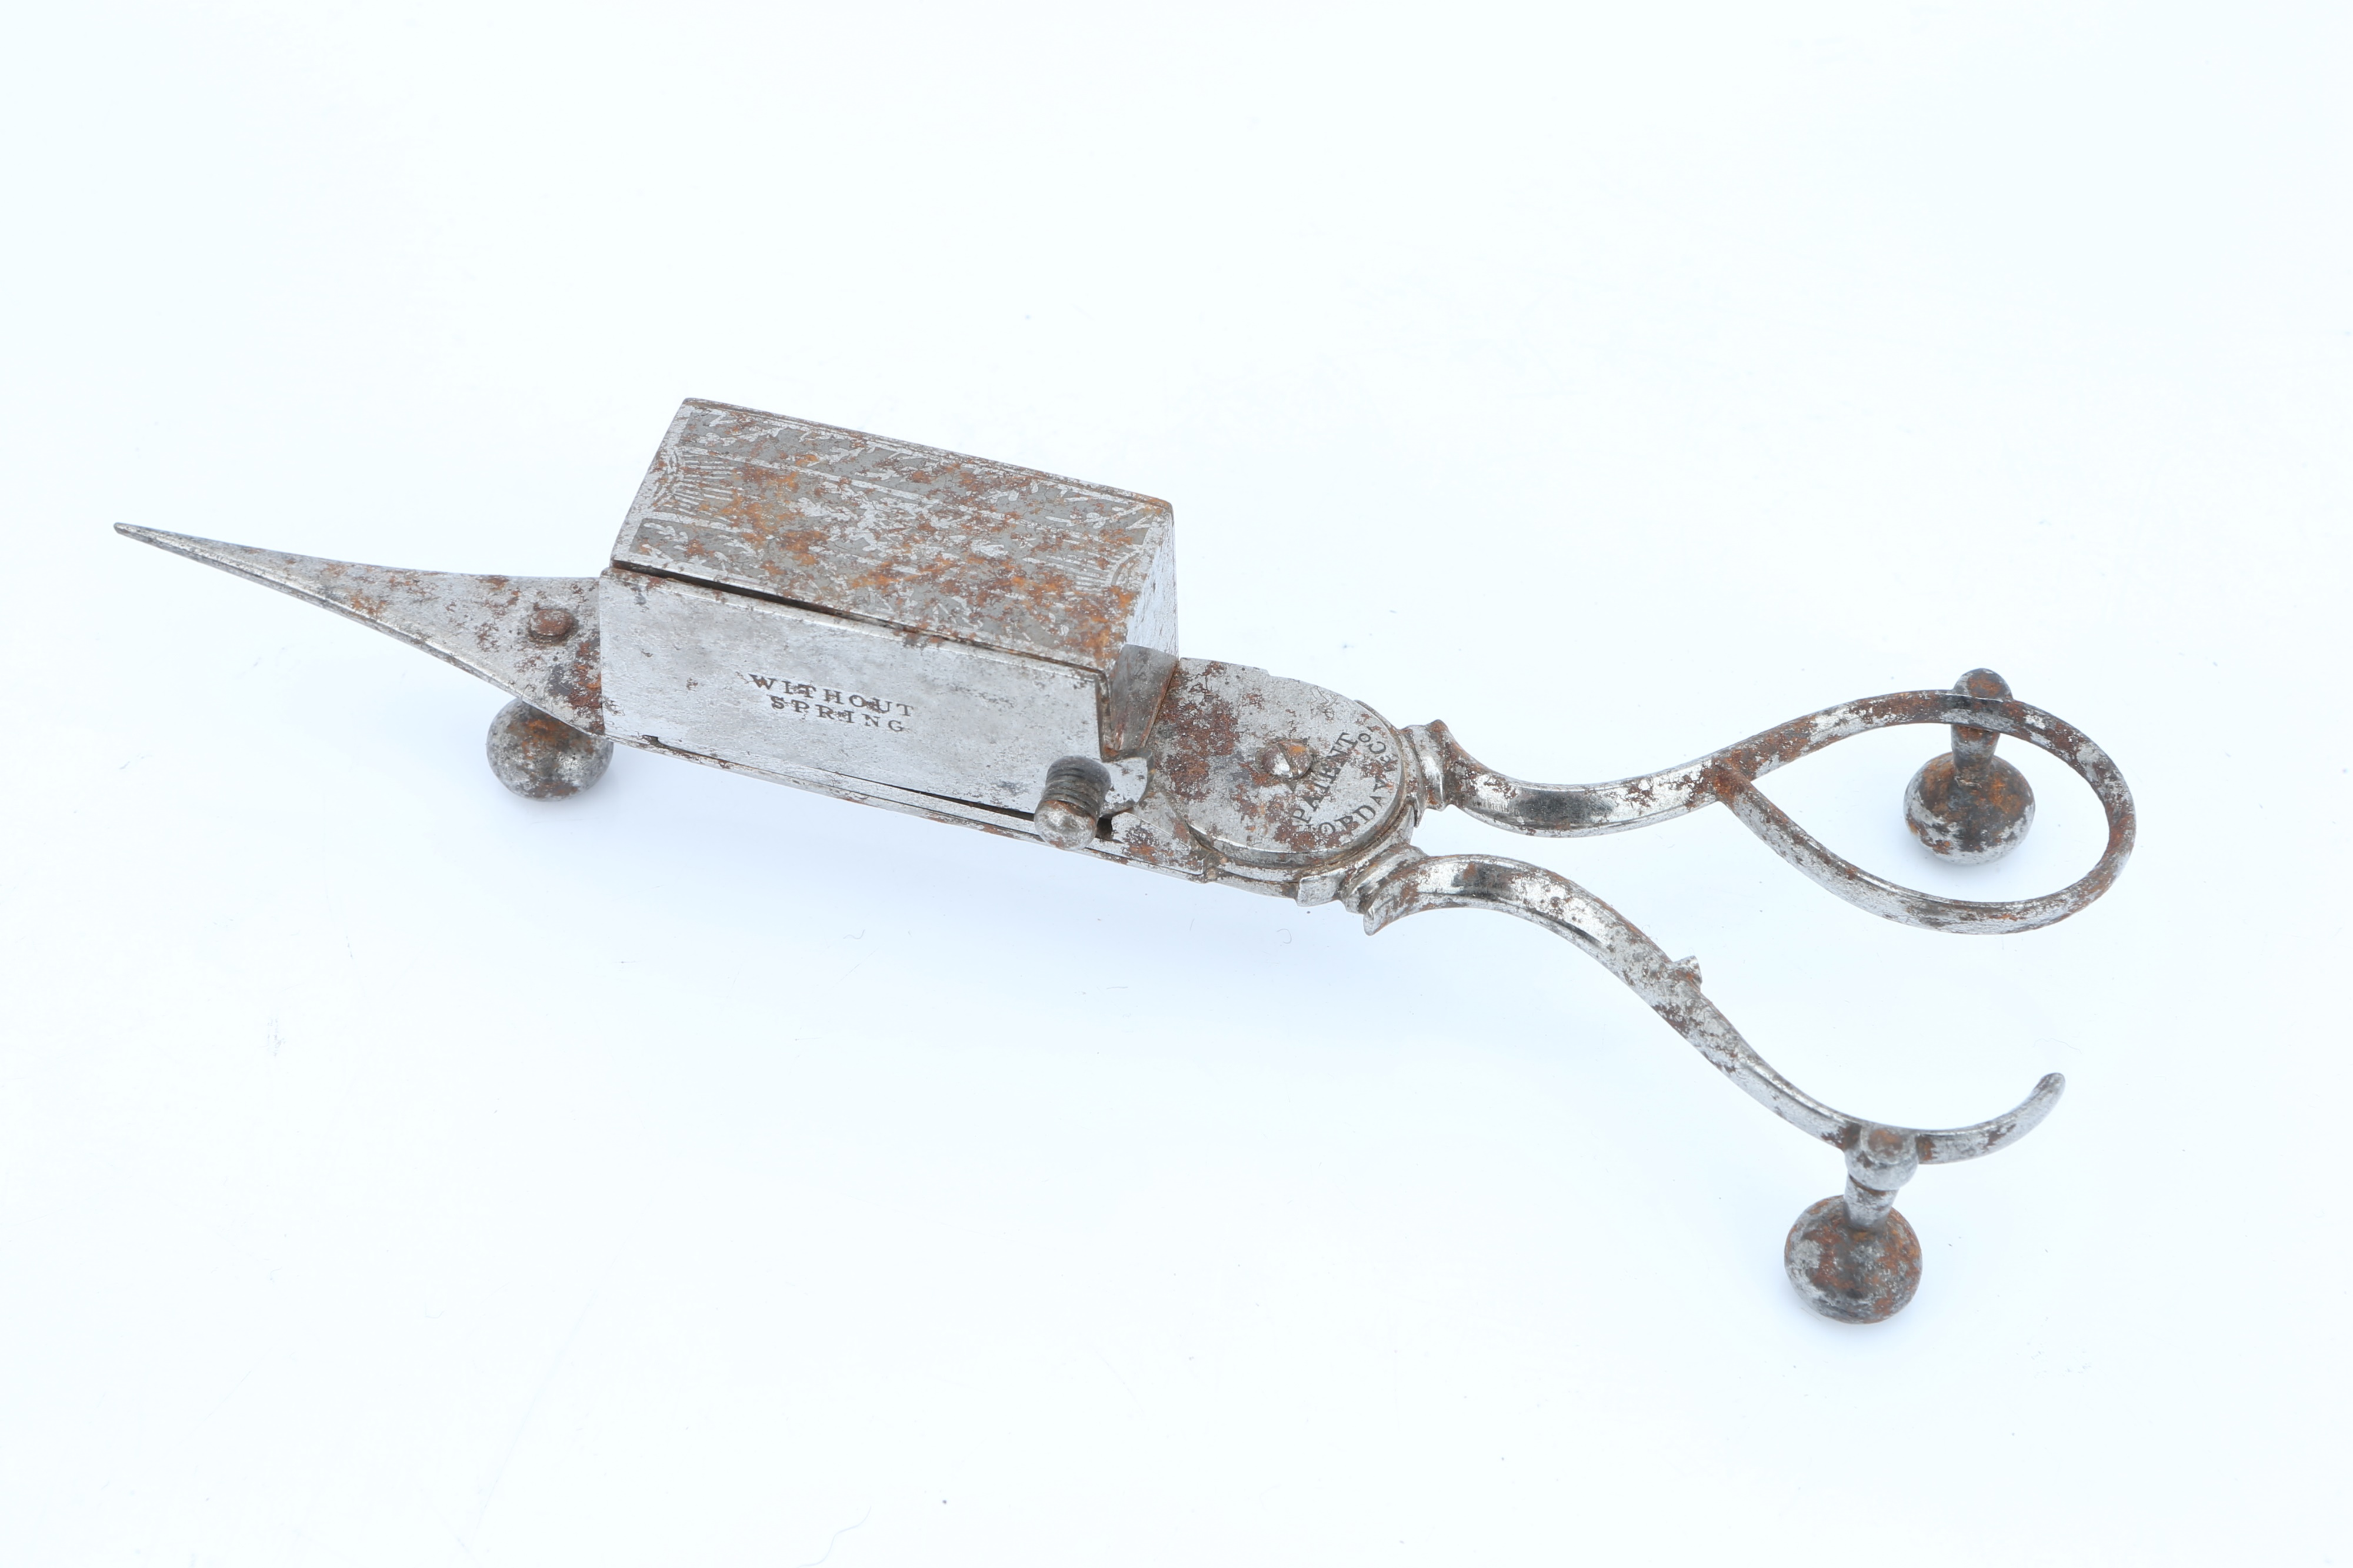 10 Antique Candle Snuffers - Image 3 of 3